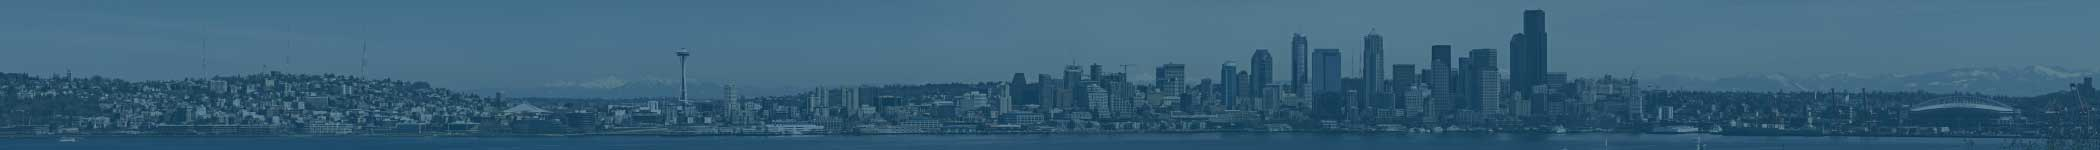 Seattle Commercial Real Estate Blog